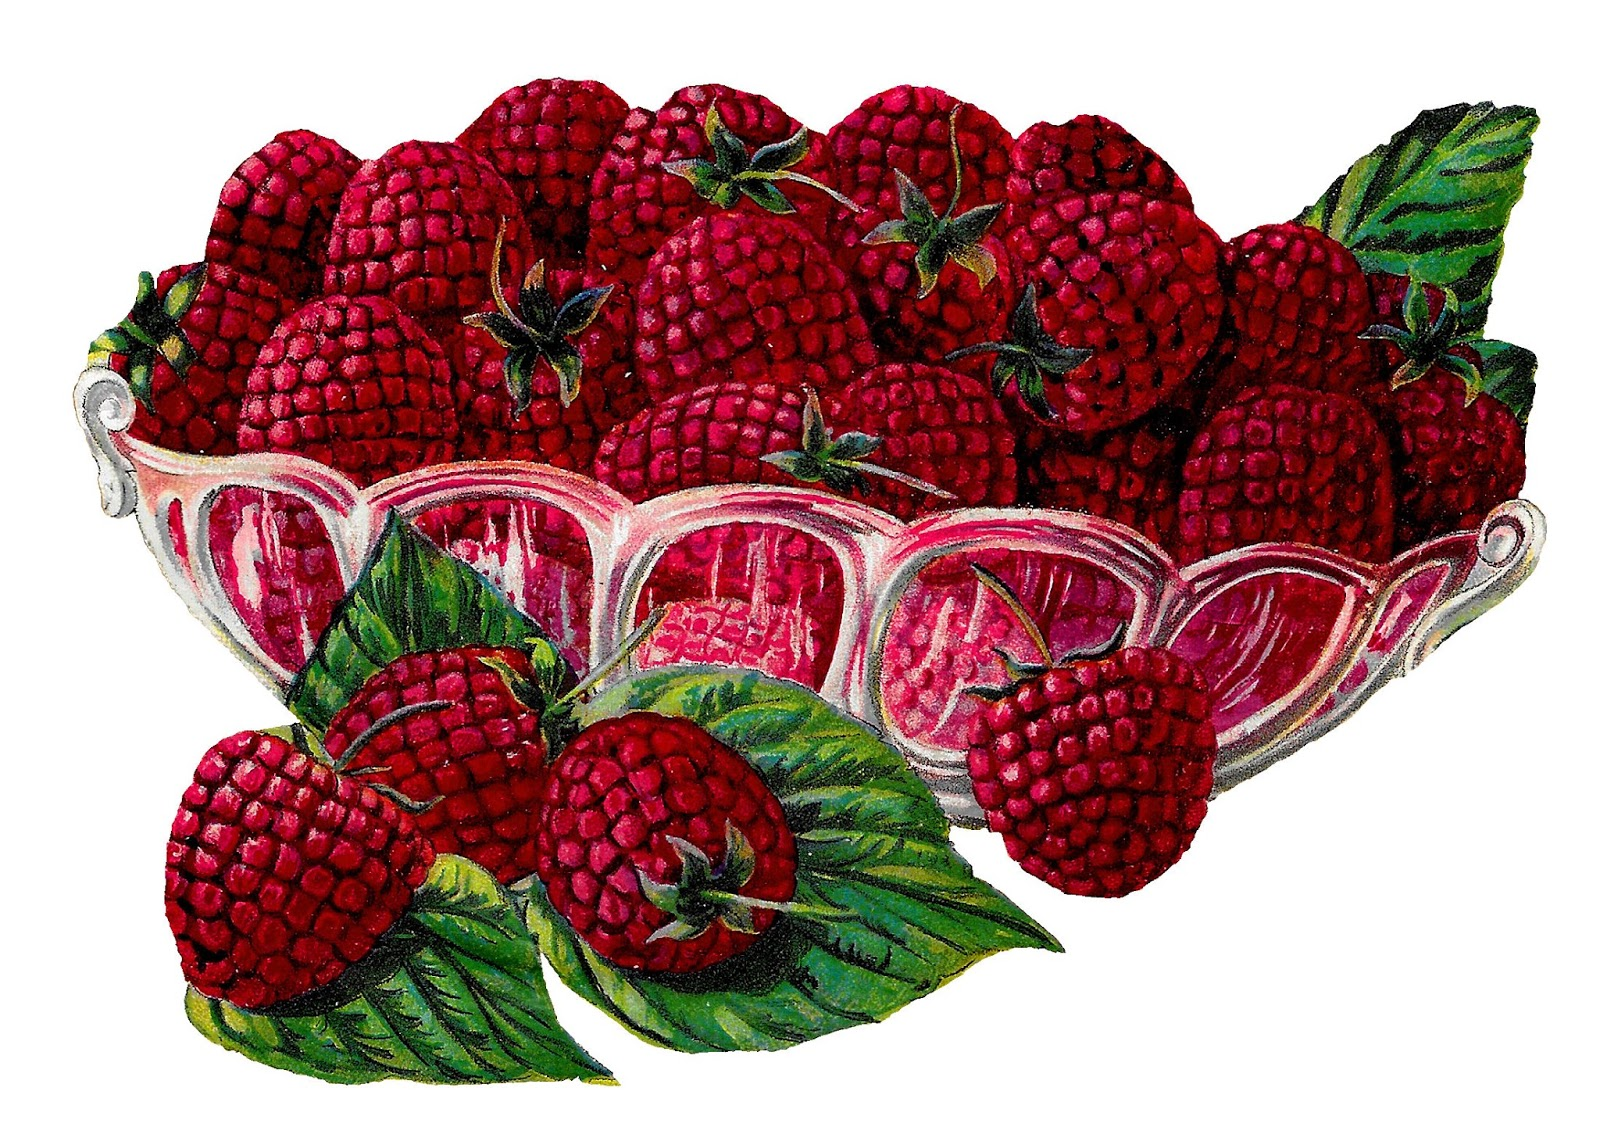 Antique images royalty free. Berries clipart raspberry